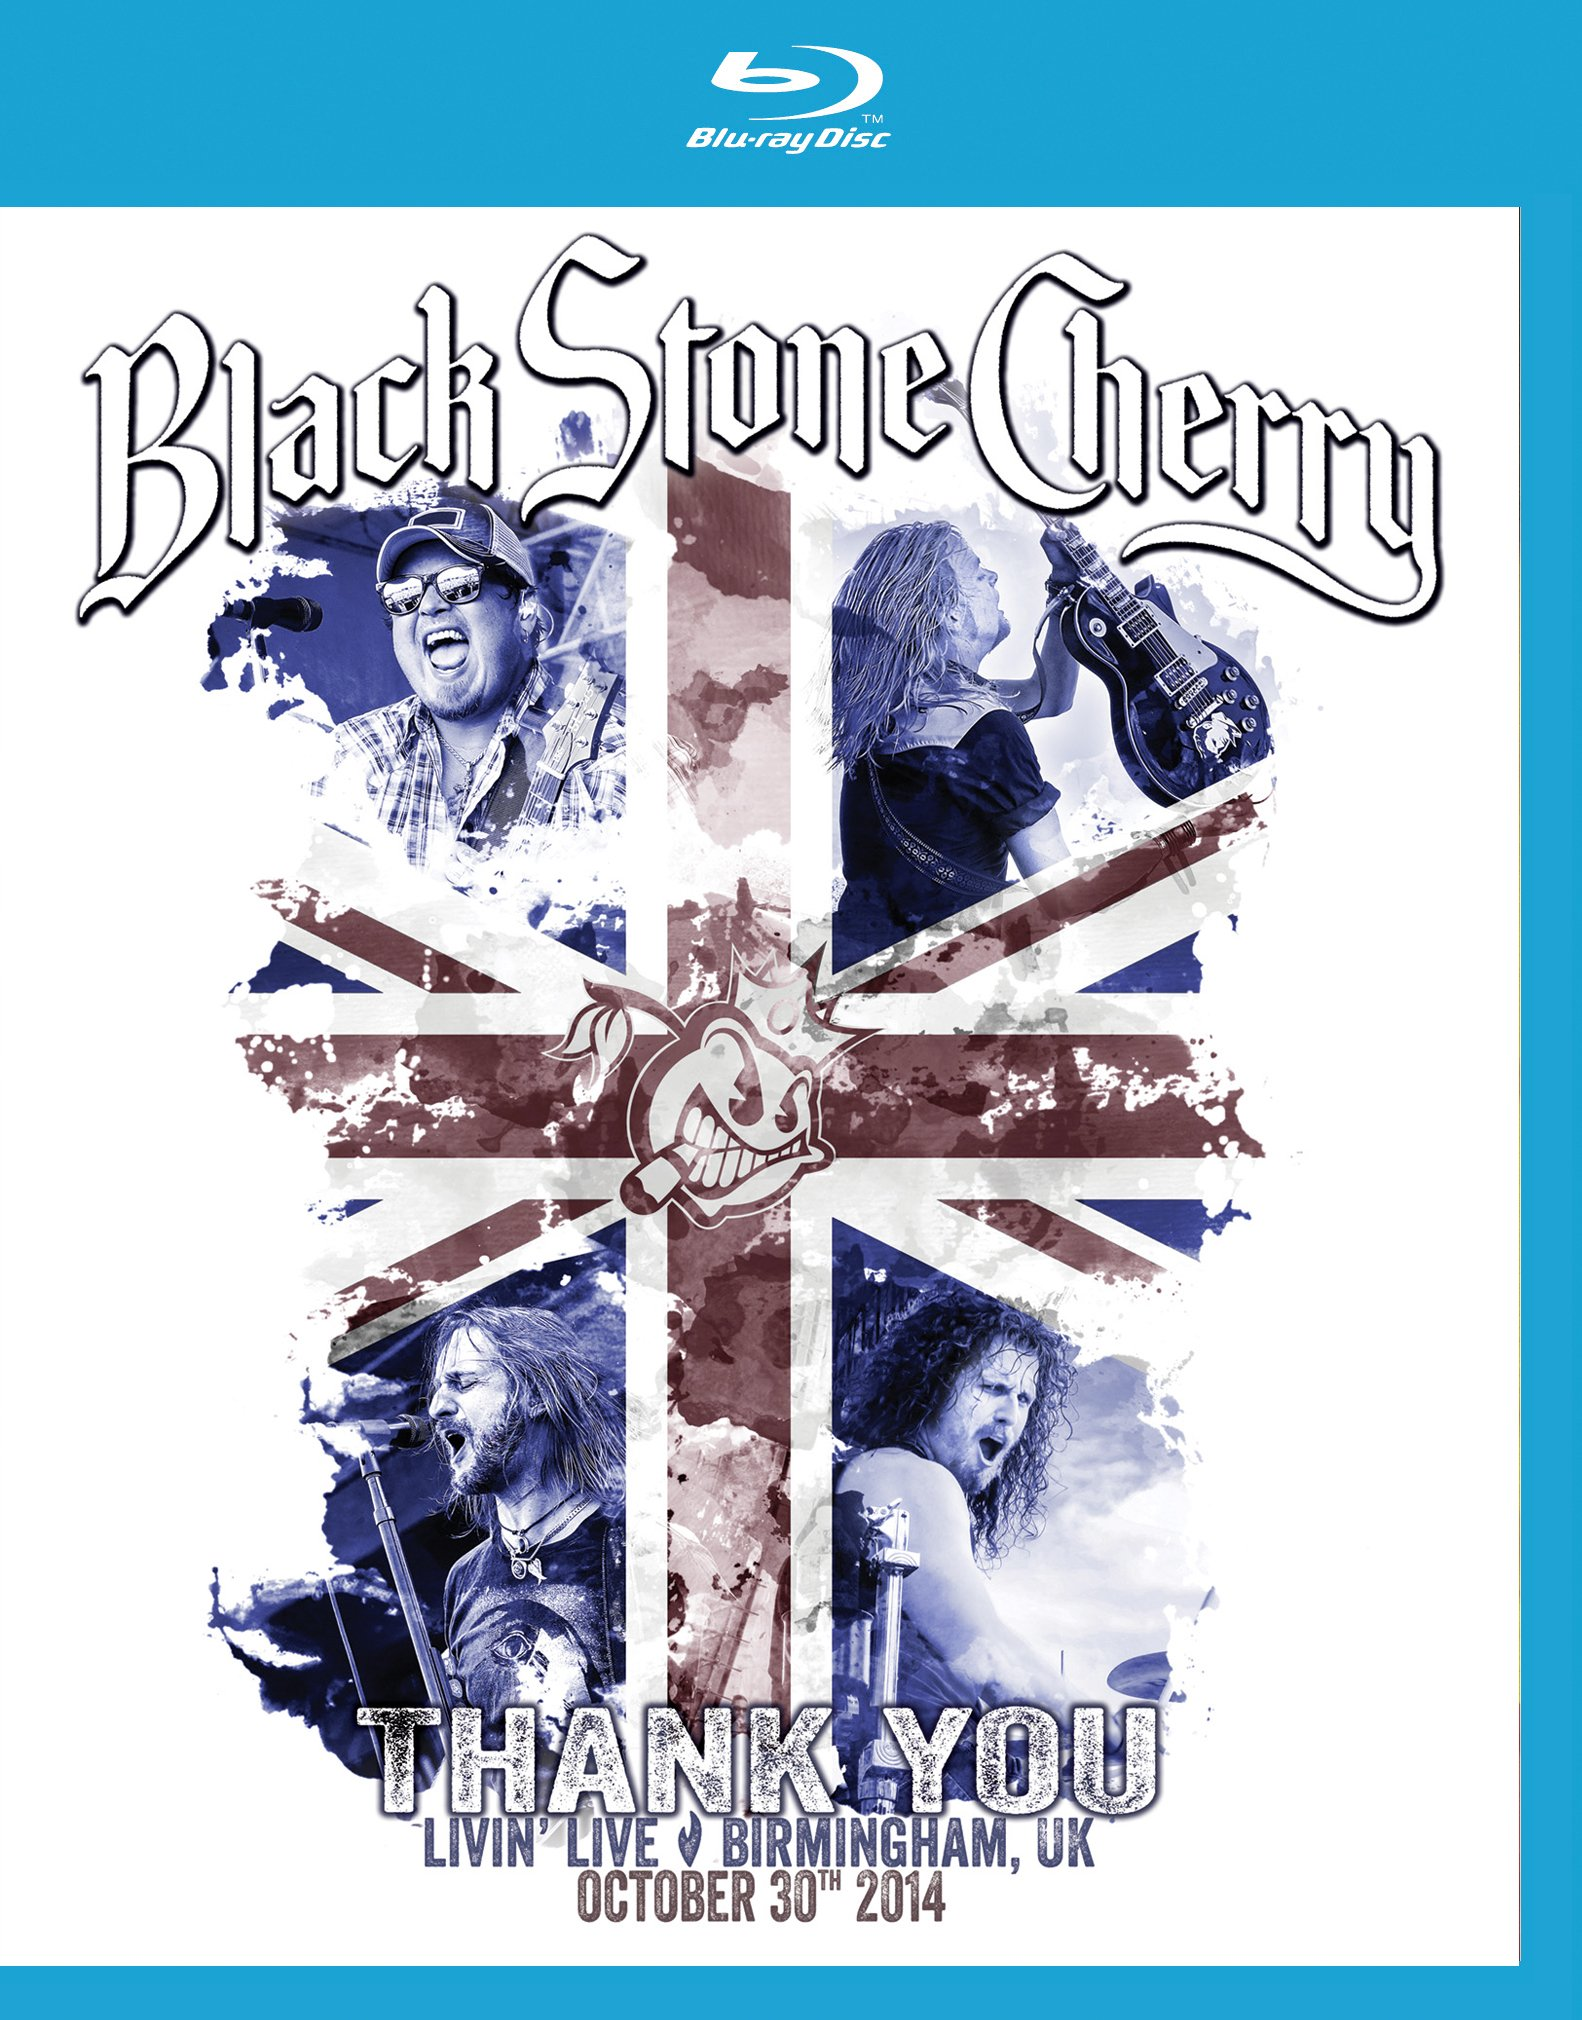 Blu-ray : Black Stone Cherry - Thank You: Livin' Live, Birmingham, Uk October 30, 2014 [BR/ CD] (With CD, 2 Disc)